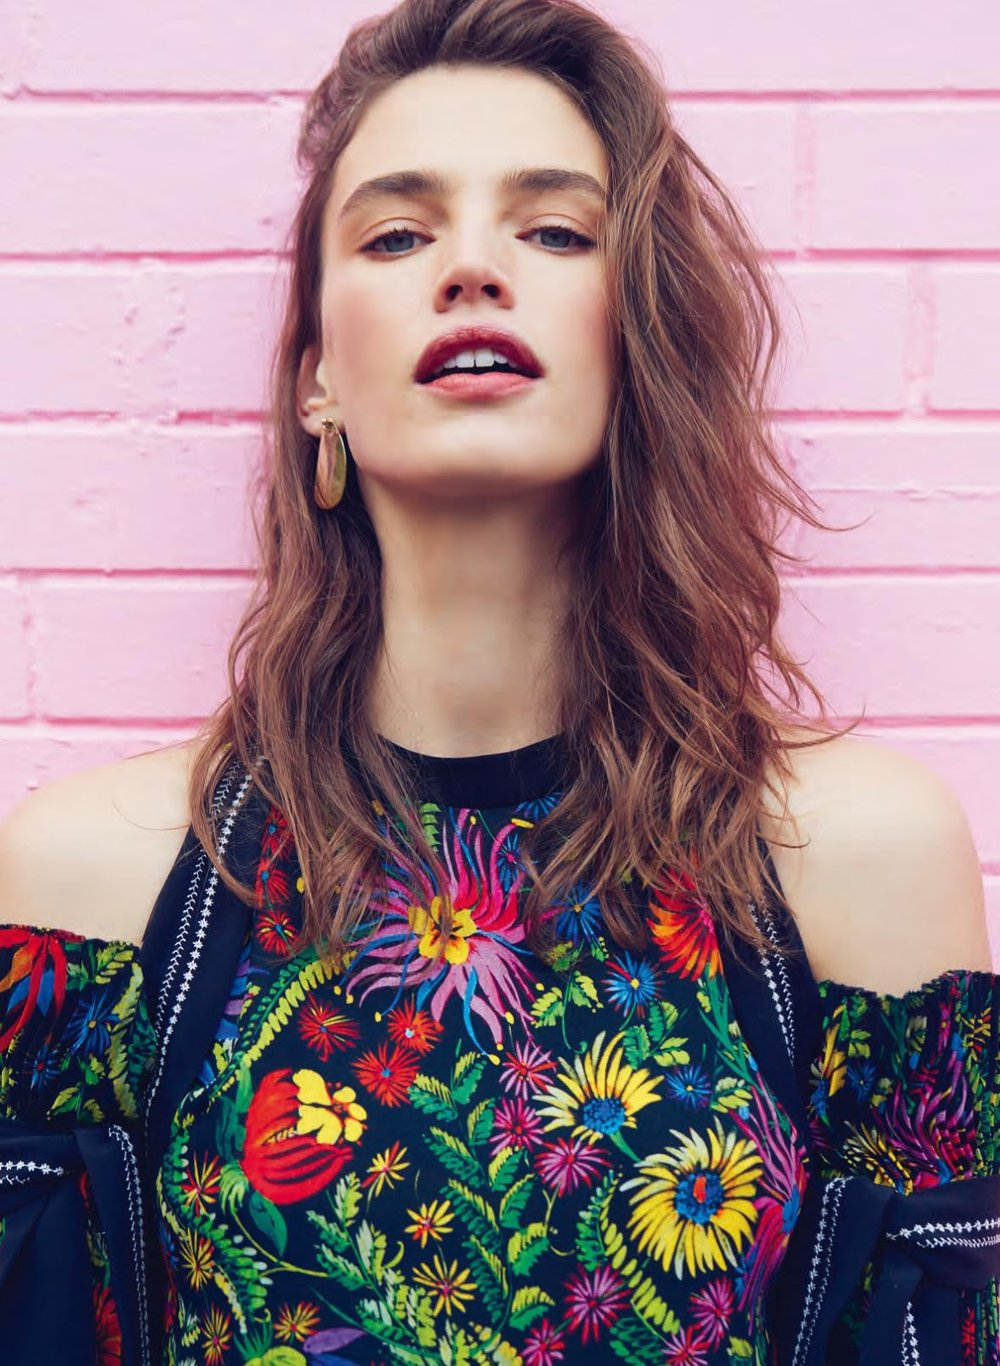 patricia-wong-the-rose-tint-take-me-down-to-paradise-city-elle-canada-january-2017 7